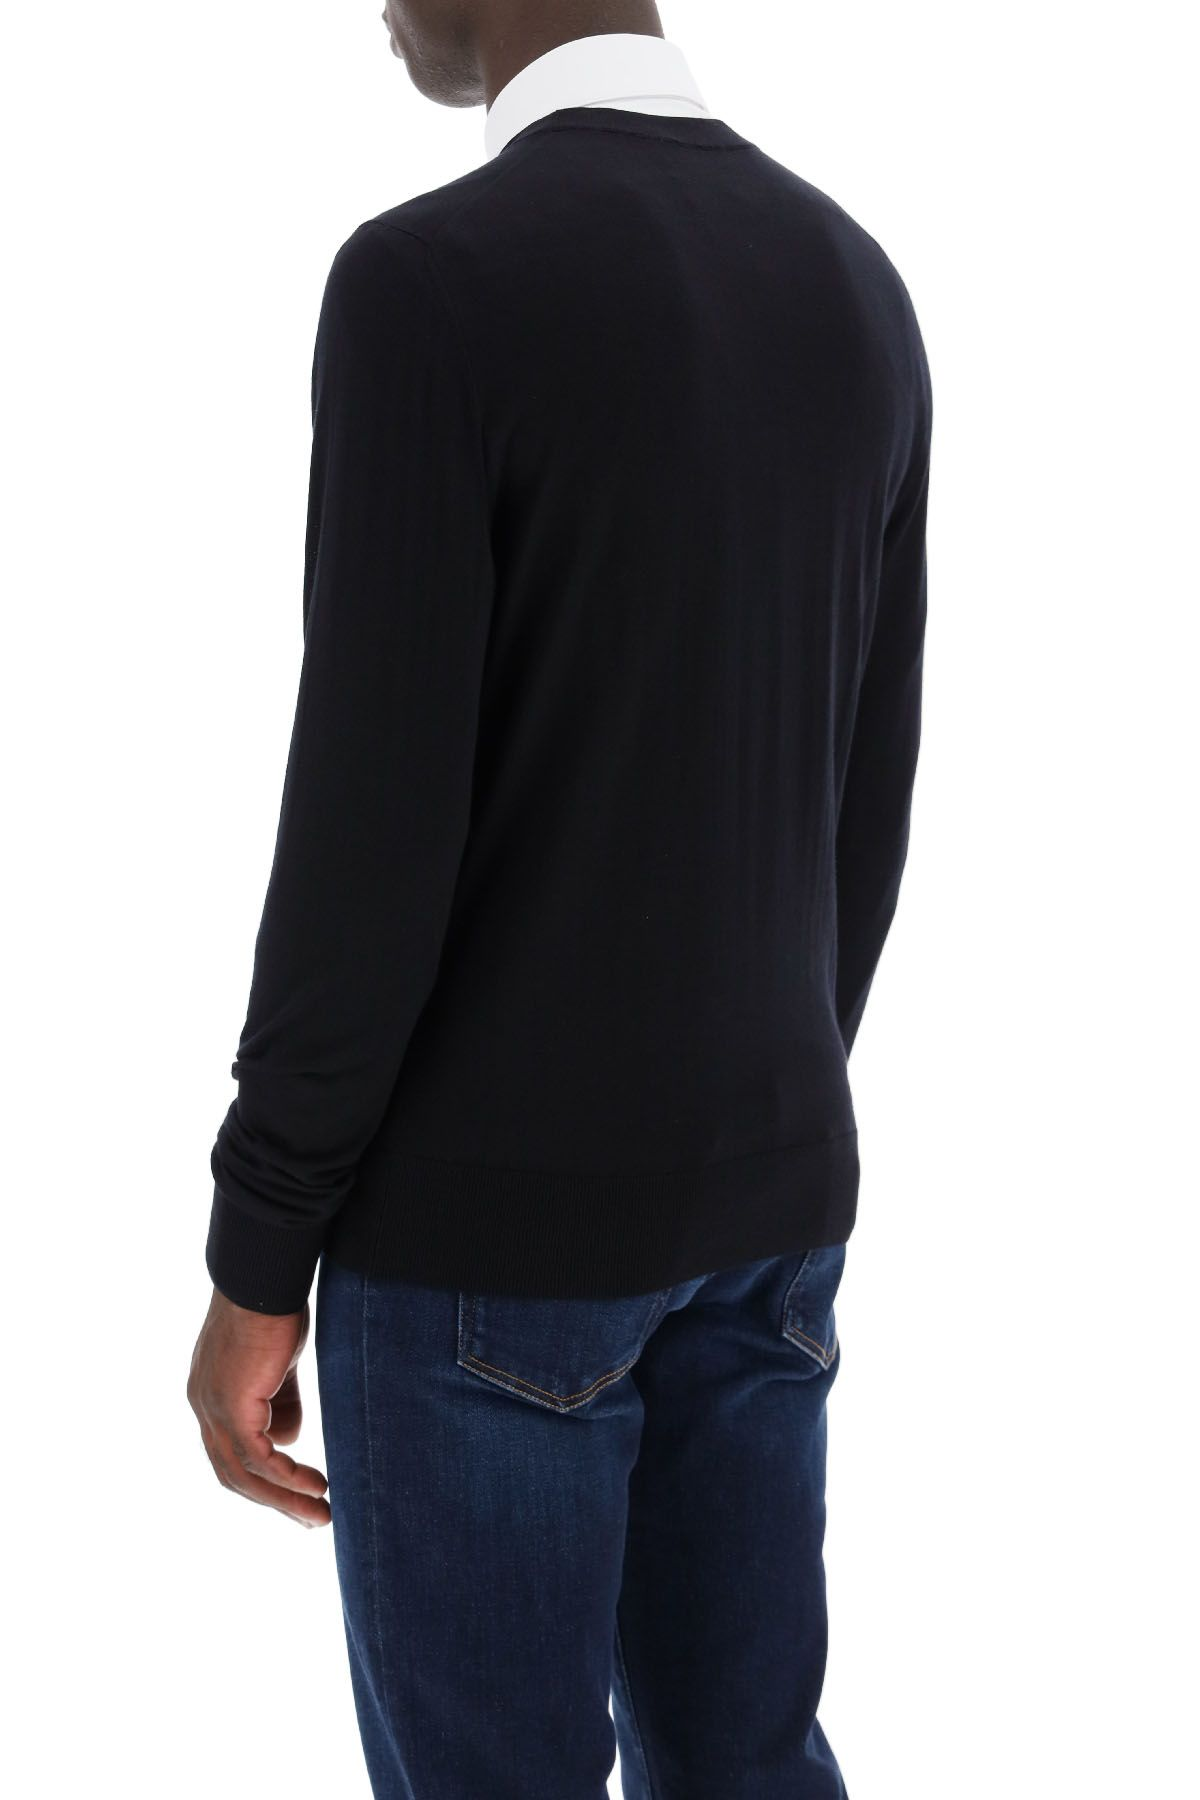 dolce & gabbana clothing men combed wool sweater dg embroidery